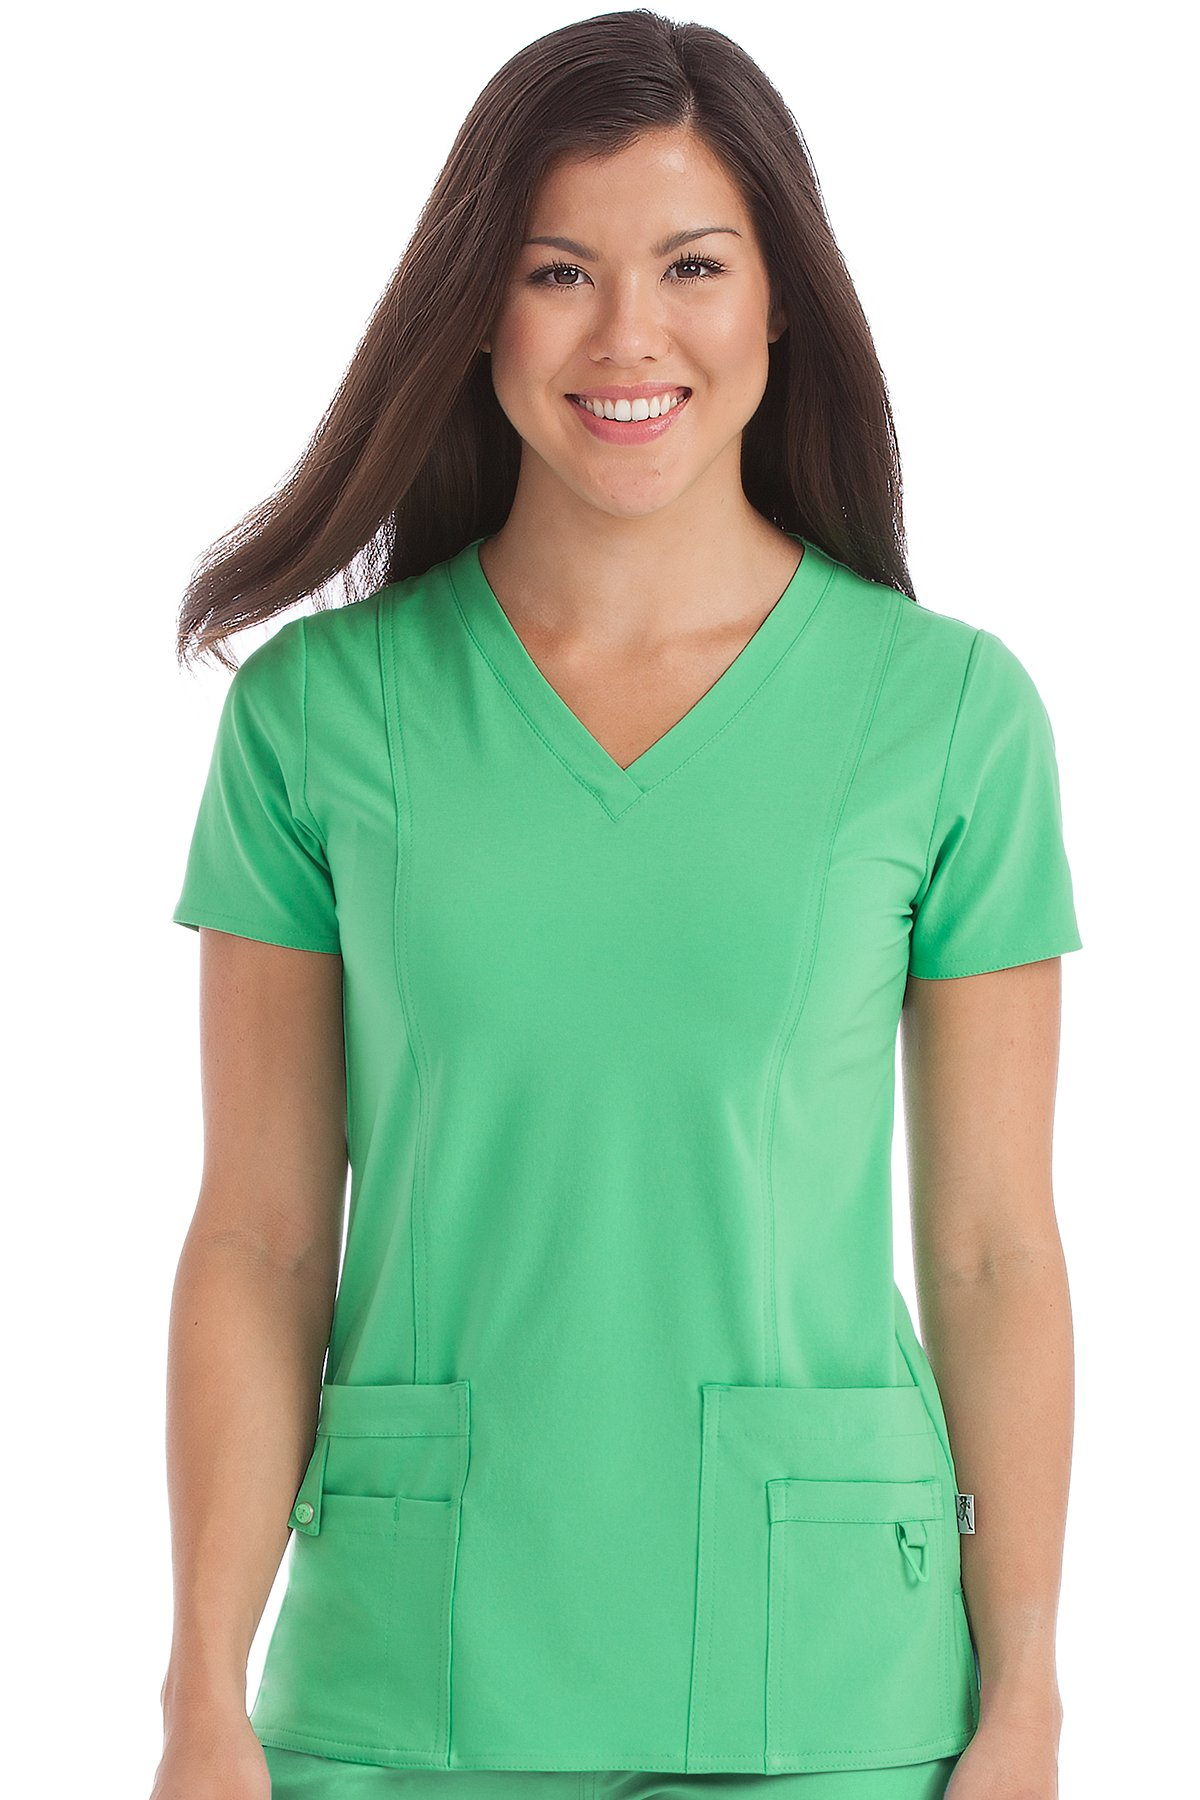 Med Couture Women's 'Activate' V-Neck In-Motion Classic Scrub Top, Clover, Large